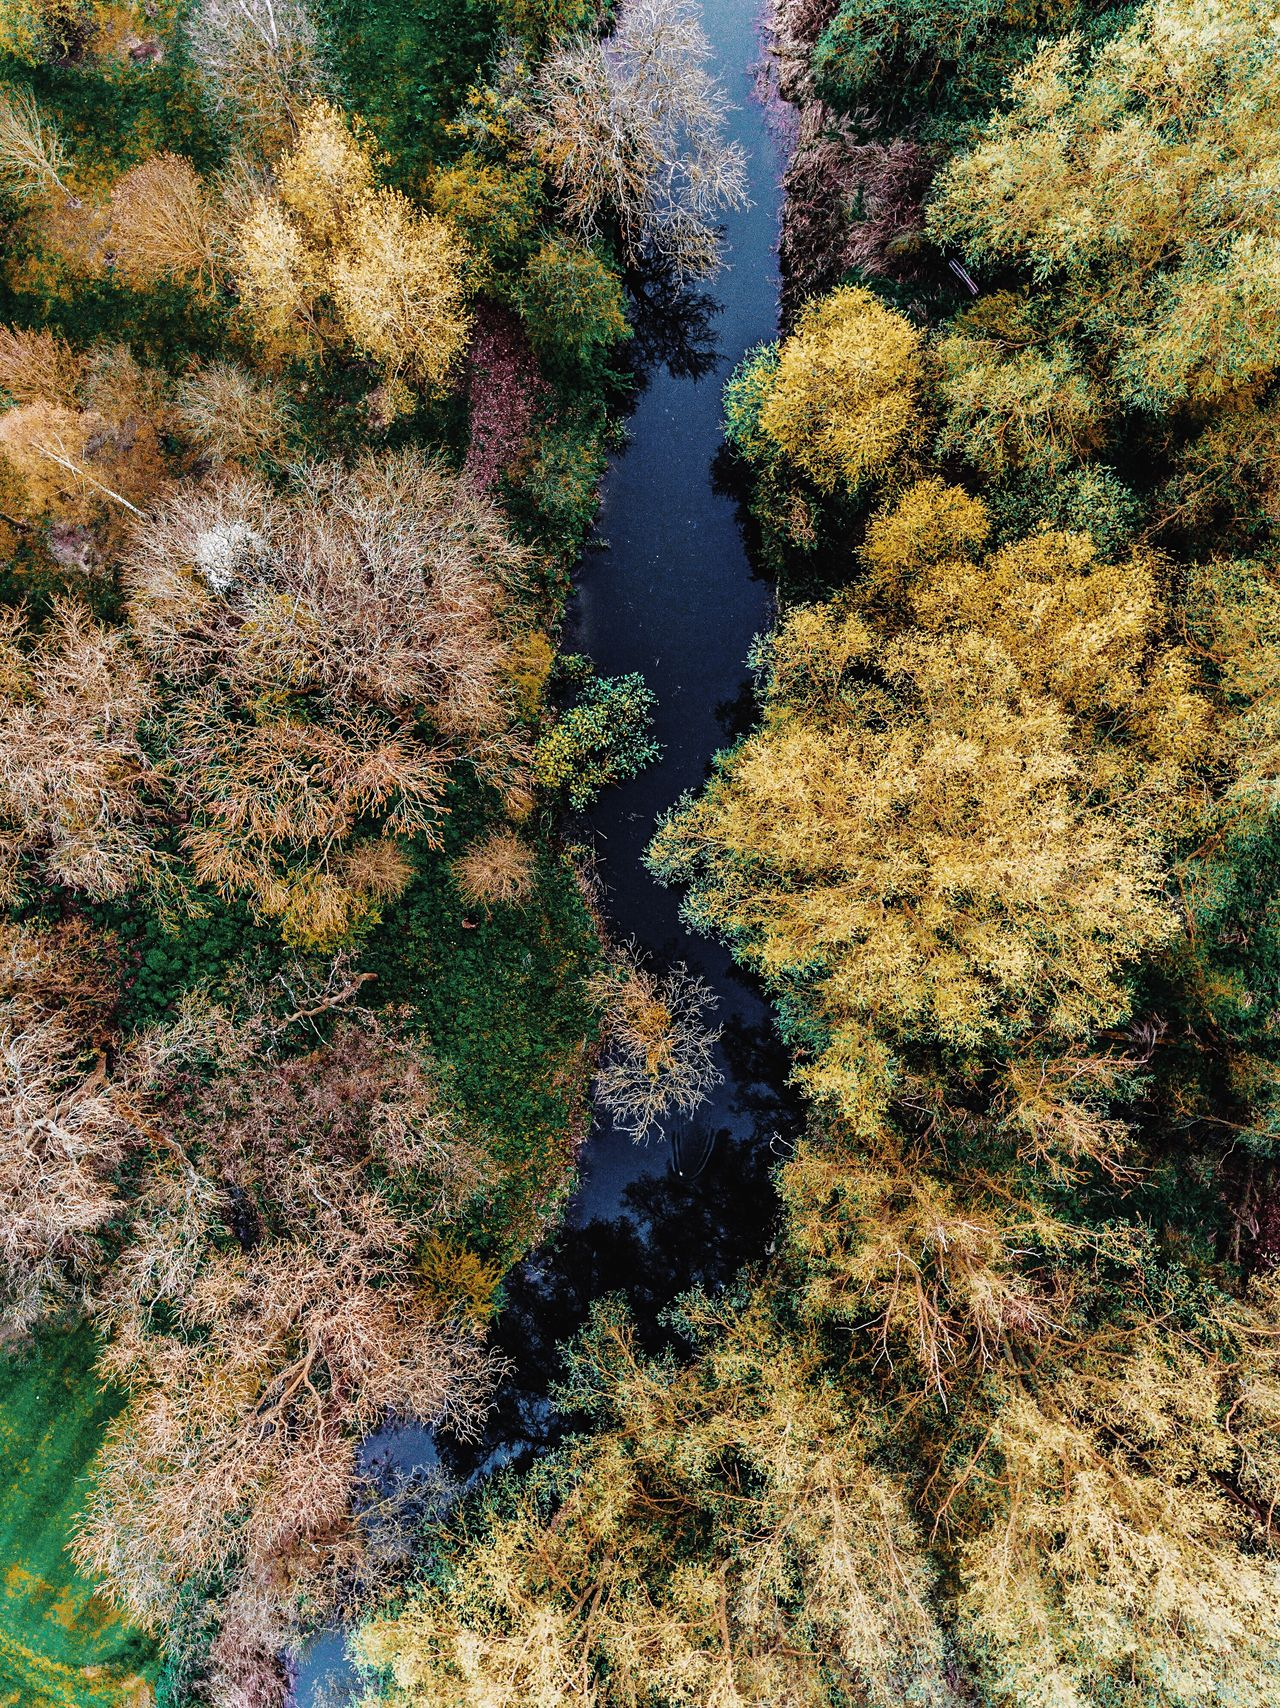 Flying with the current Nature Beauty In Nature Growth No People Outdoors Water Grass Day Tree Aerial Photography Tranquility Landscape Drone  Rural Scene